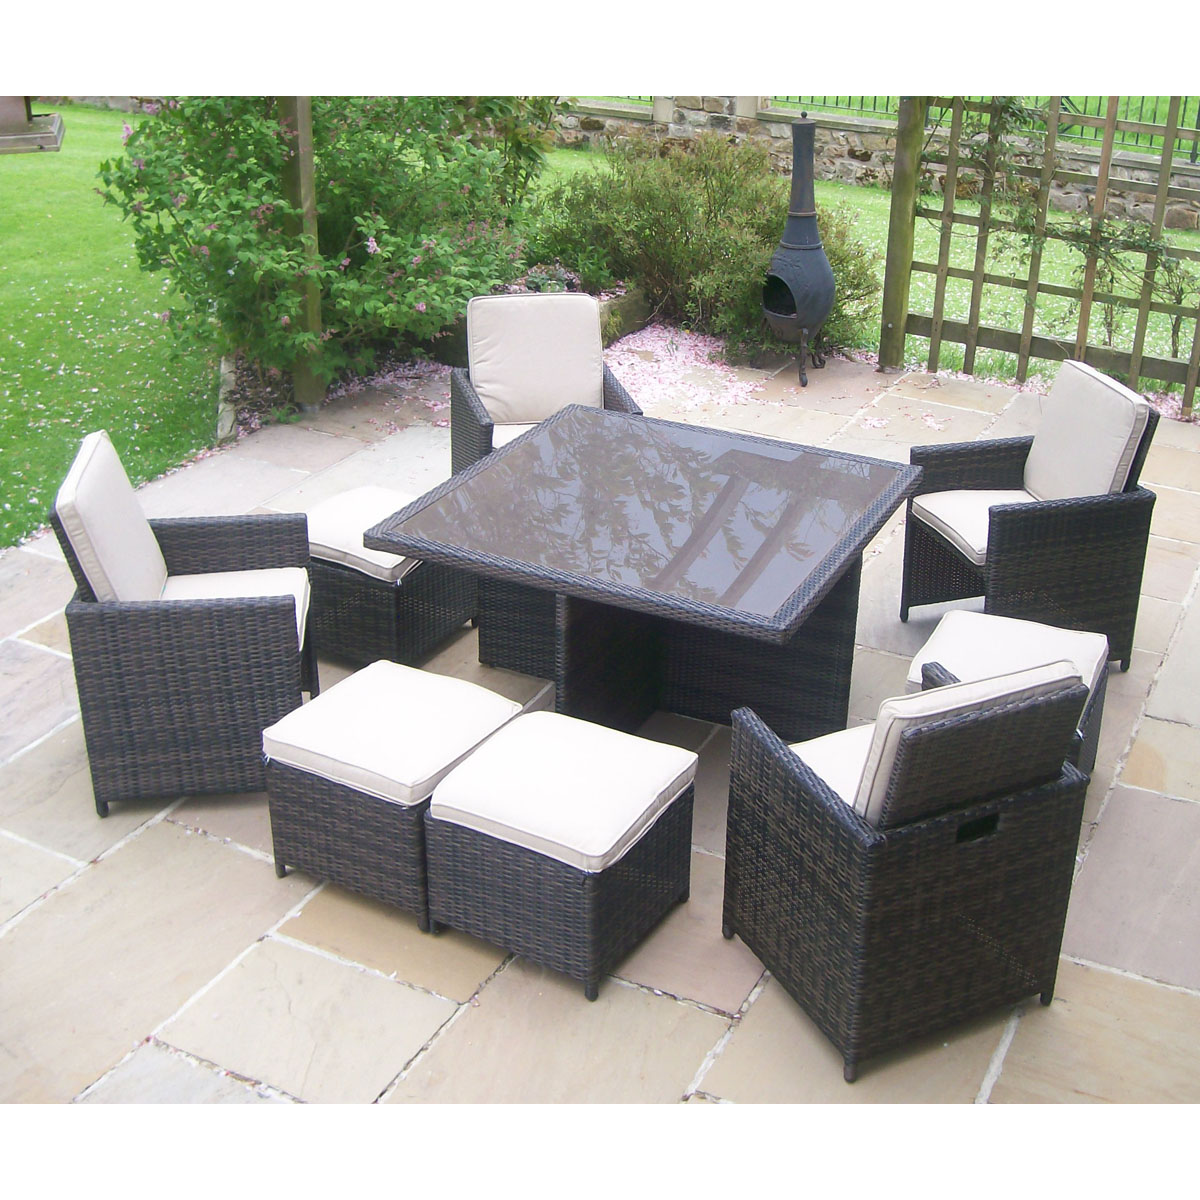 Rattan wicker garden furniture table 4 chair patio set ebay for Rattan outdoor furniture